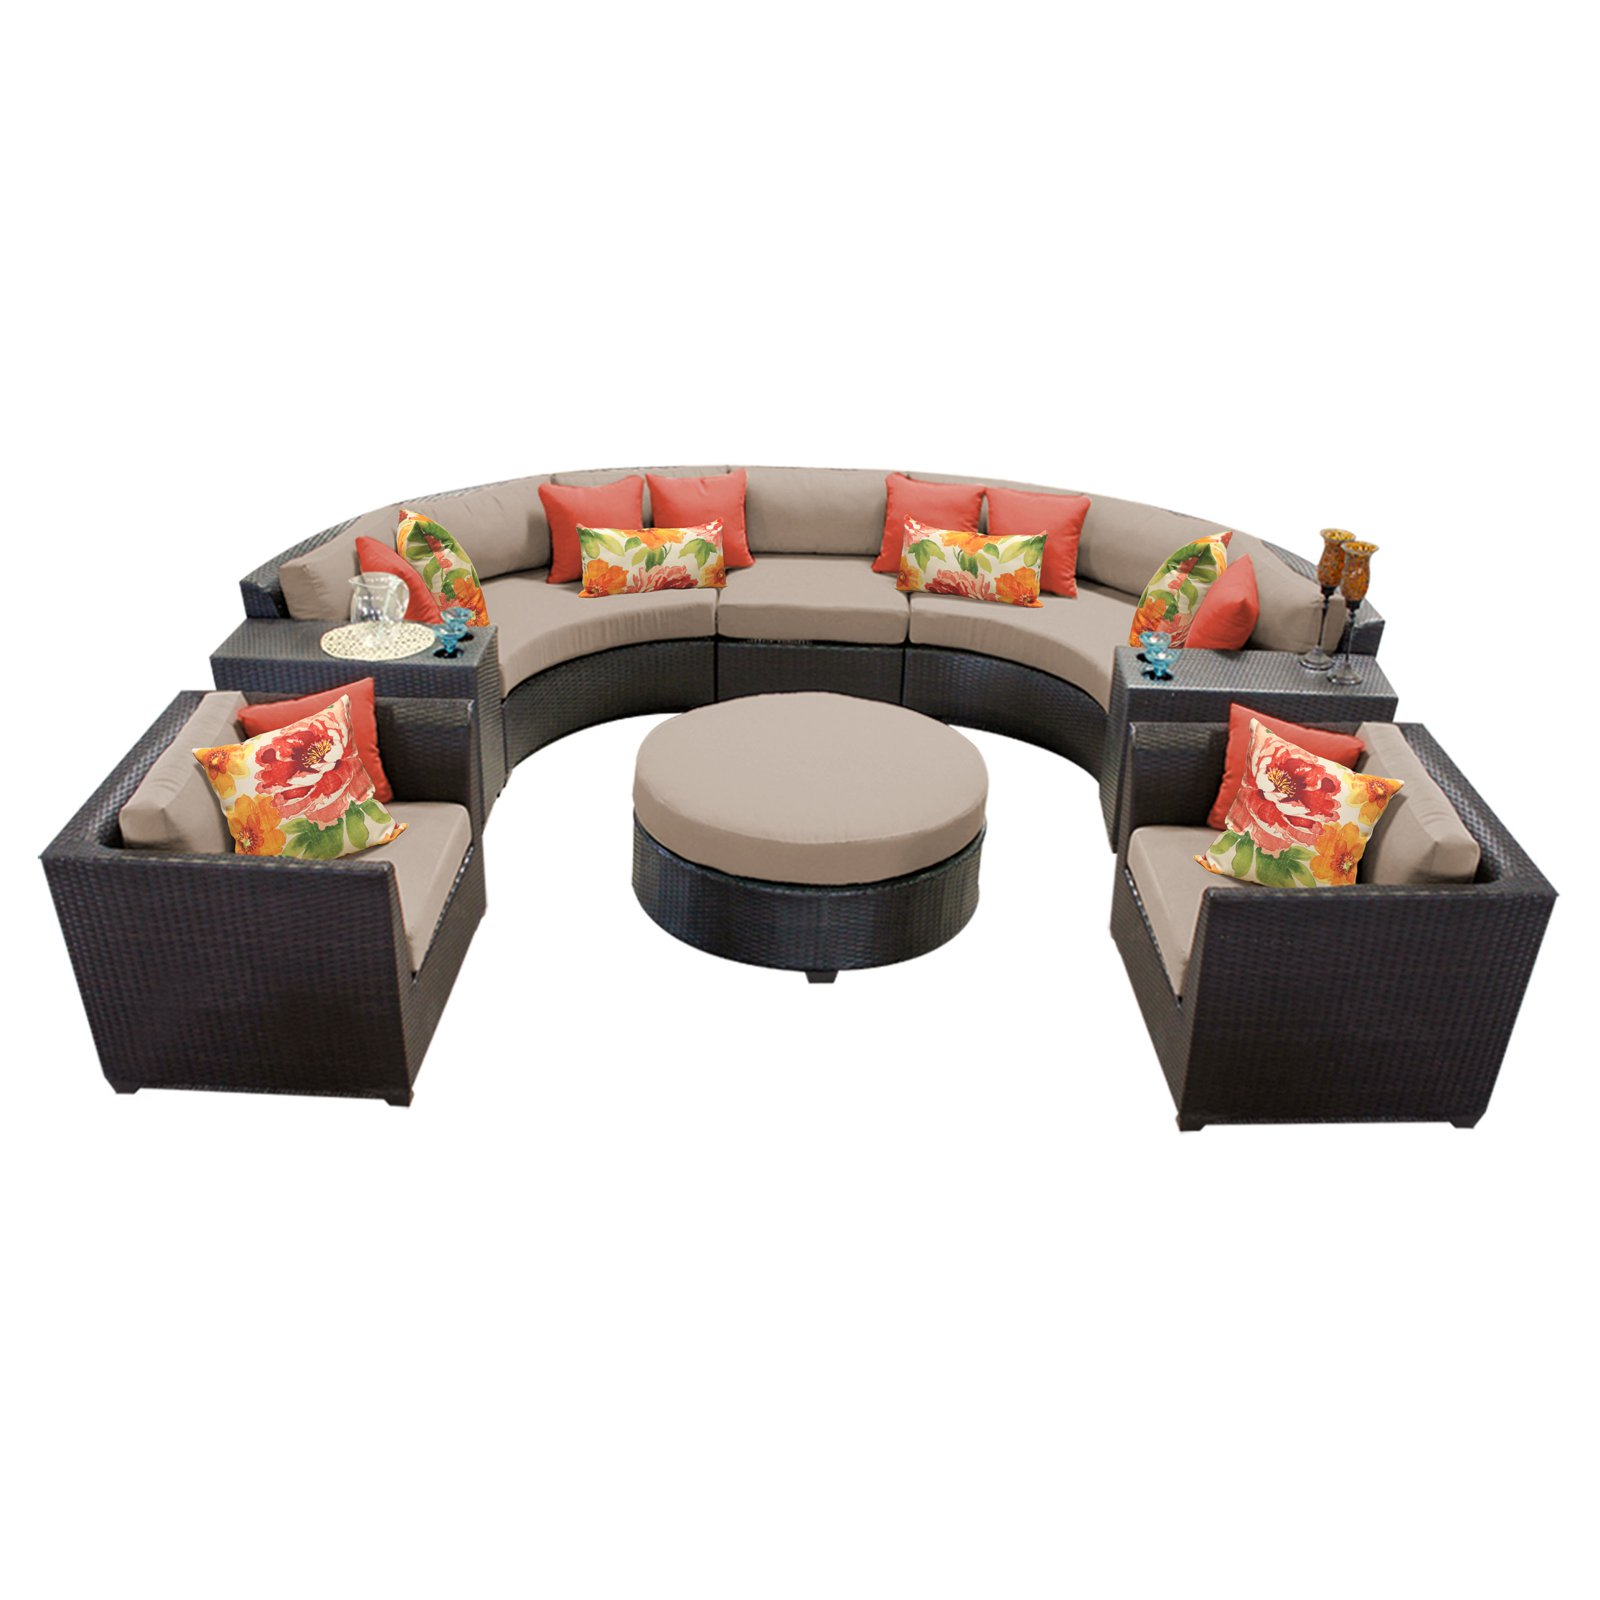 TK Classics Barbados Wicker 8 Piece Patio Conversation Set with Round Coffee Table and 2 Sets of Cushion Covers